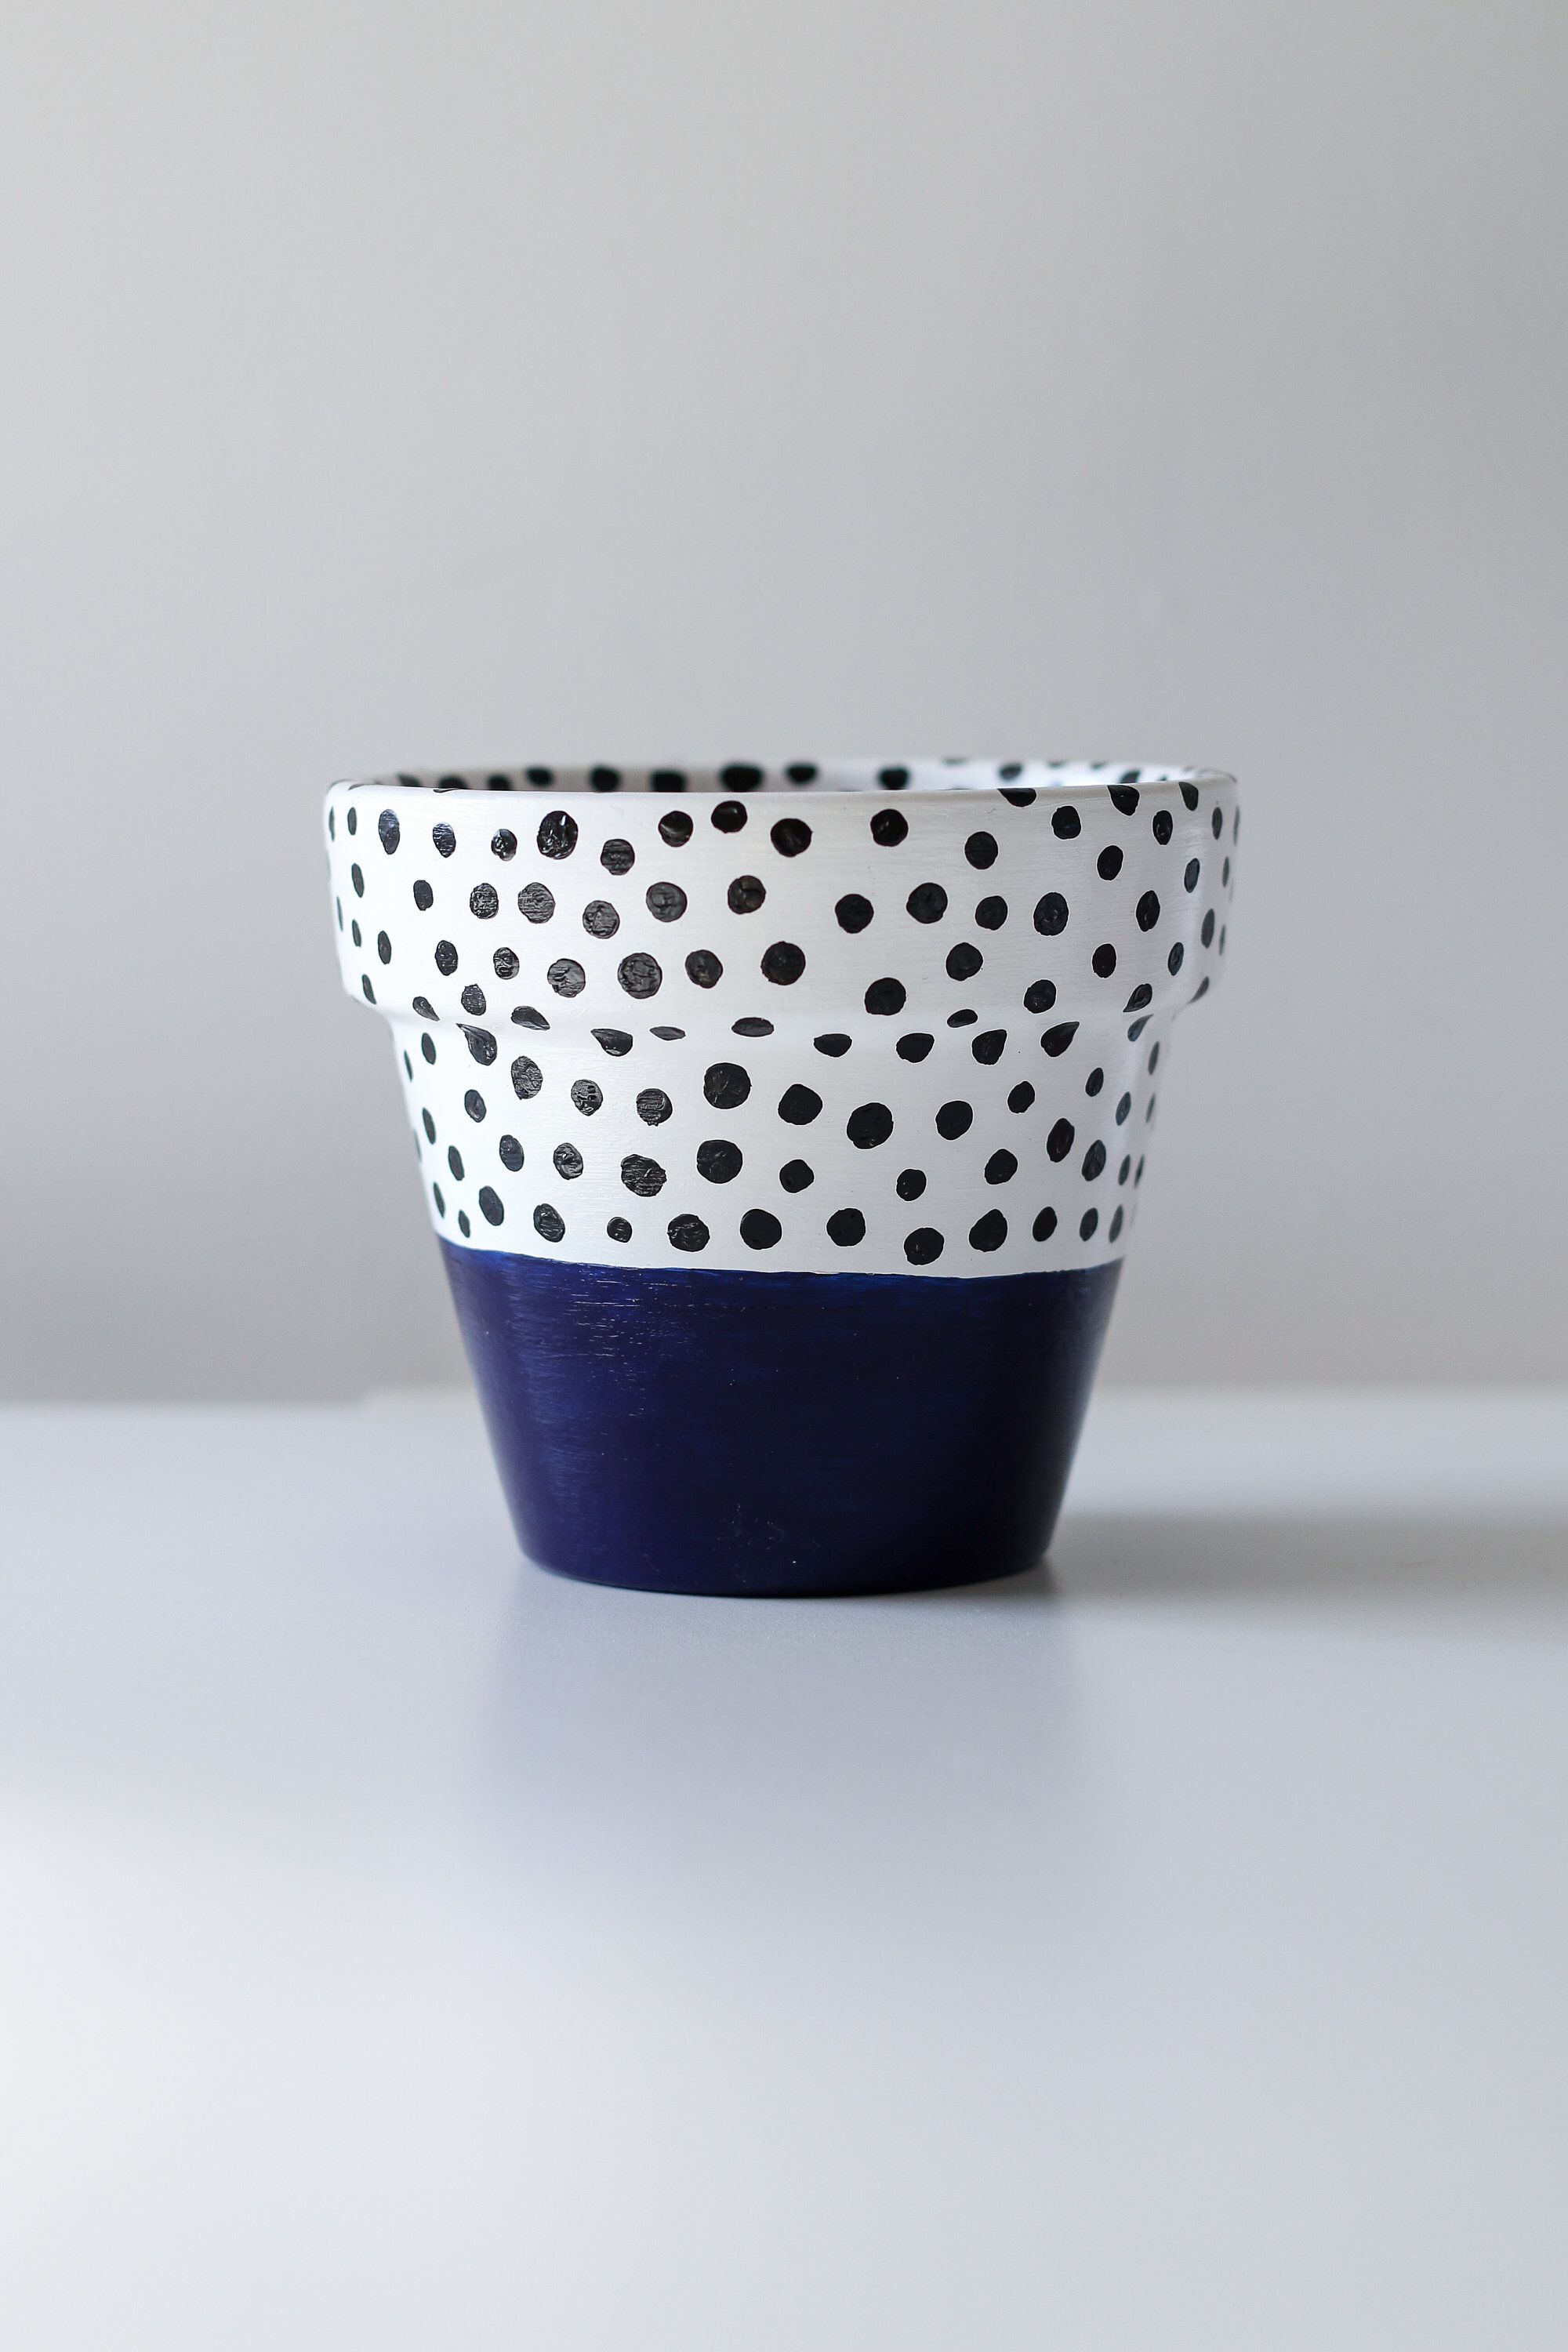 Navy Blue White And Black Polka Dot Plant Pot 11cm X 9 5cm Indoor Or Outdoor Use By Potsandpaint On Etsy Http White Plants Plant Pot Design White Flower Pot